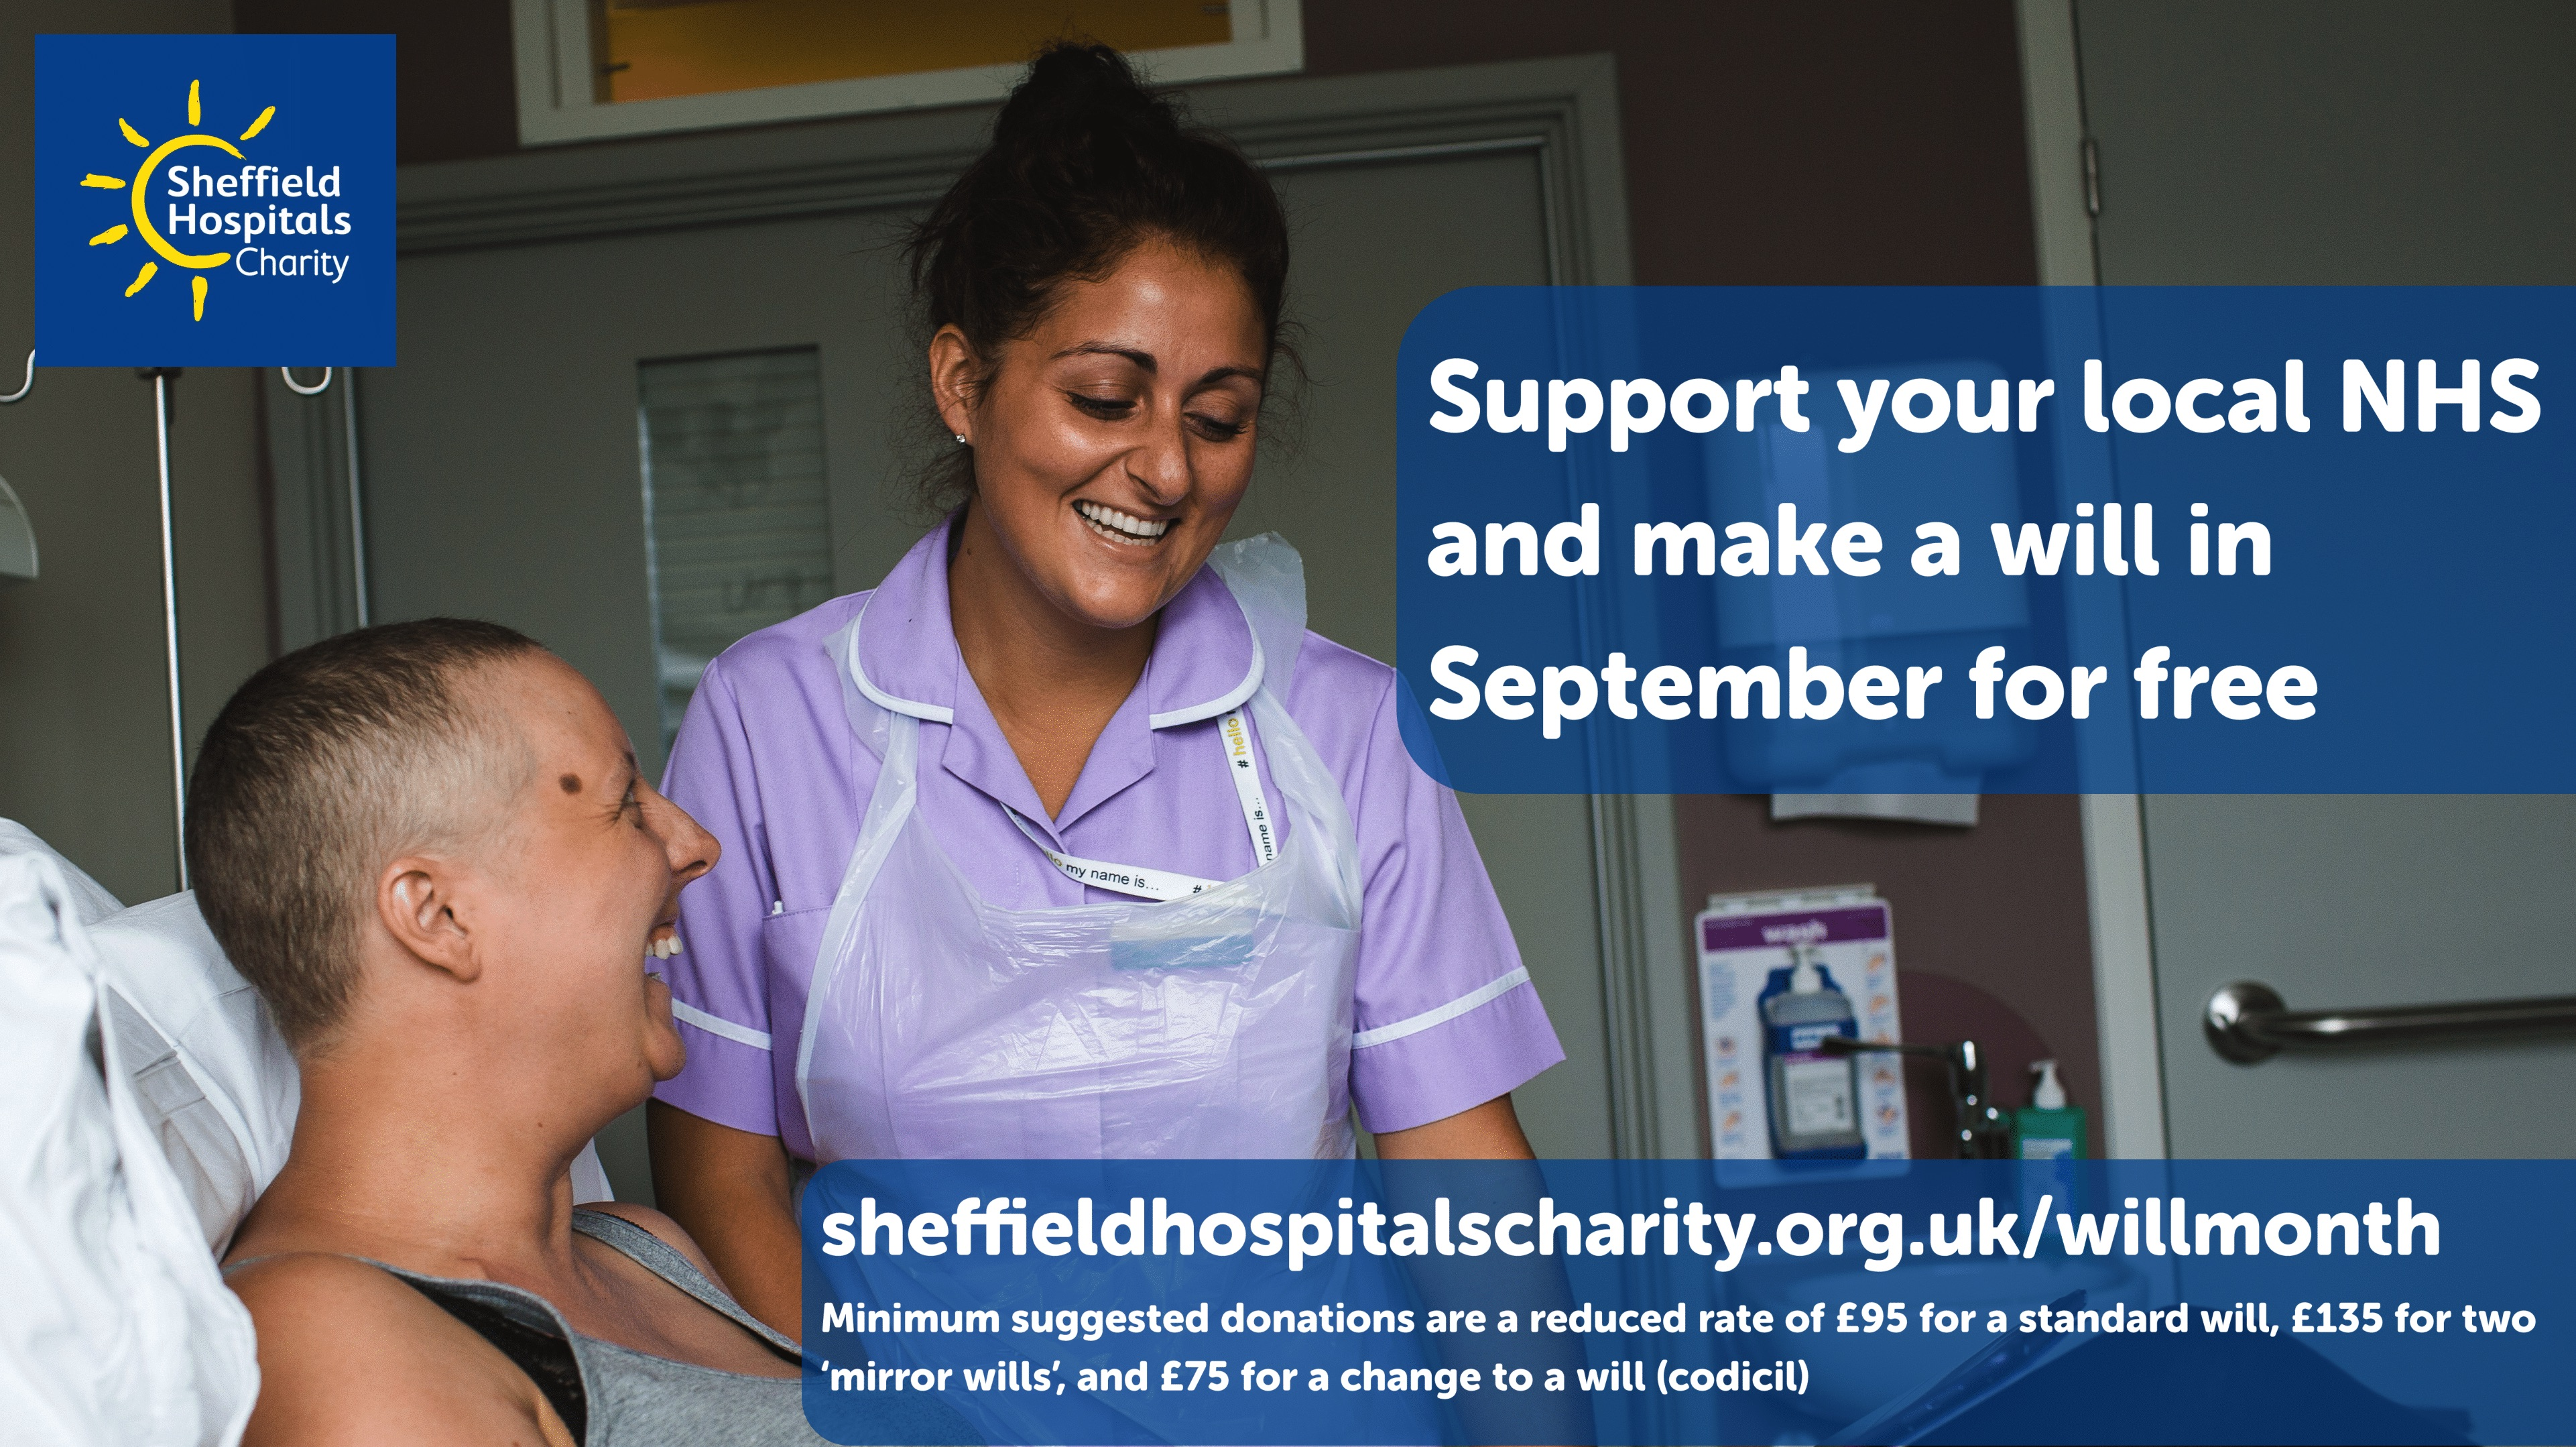 Foys Solicitors are taking part in Will Month this September to support Sheffield Hospitals Charity